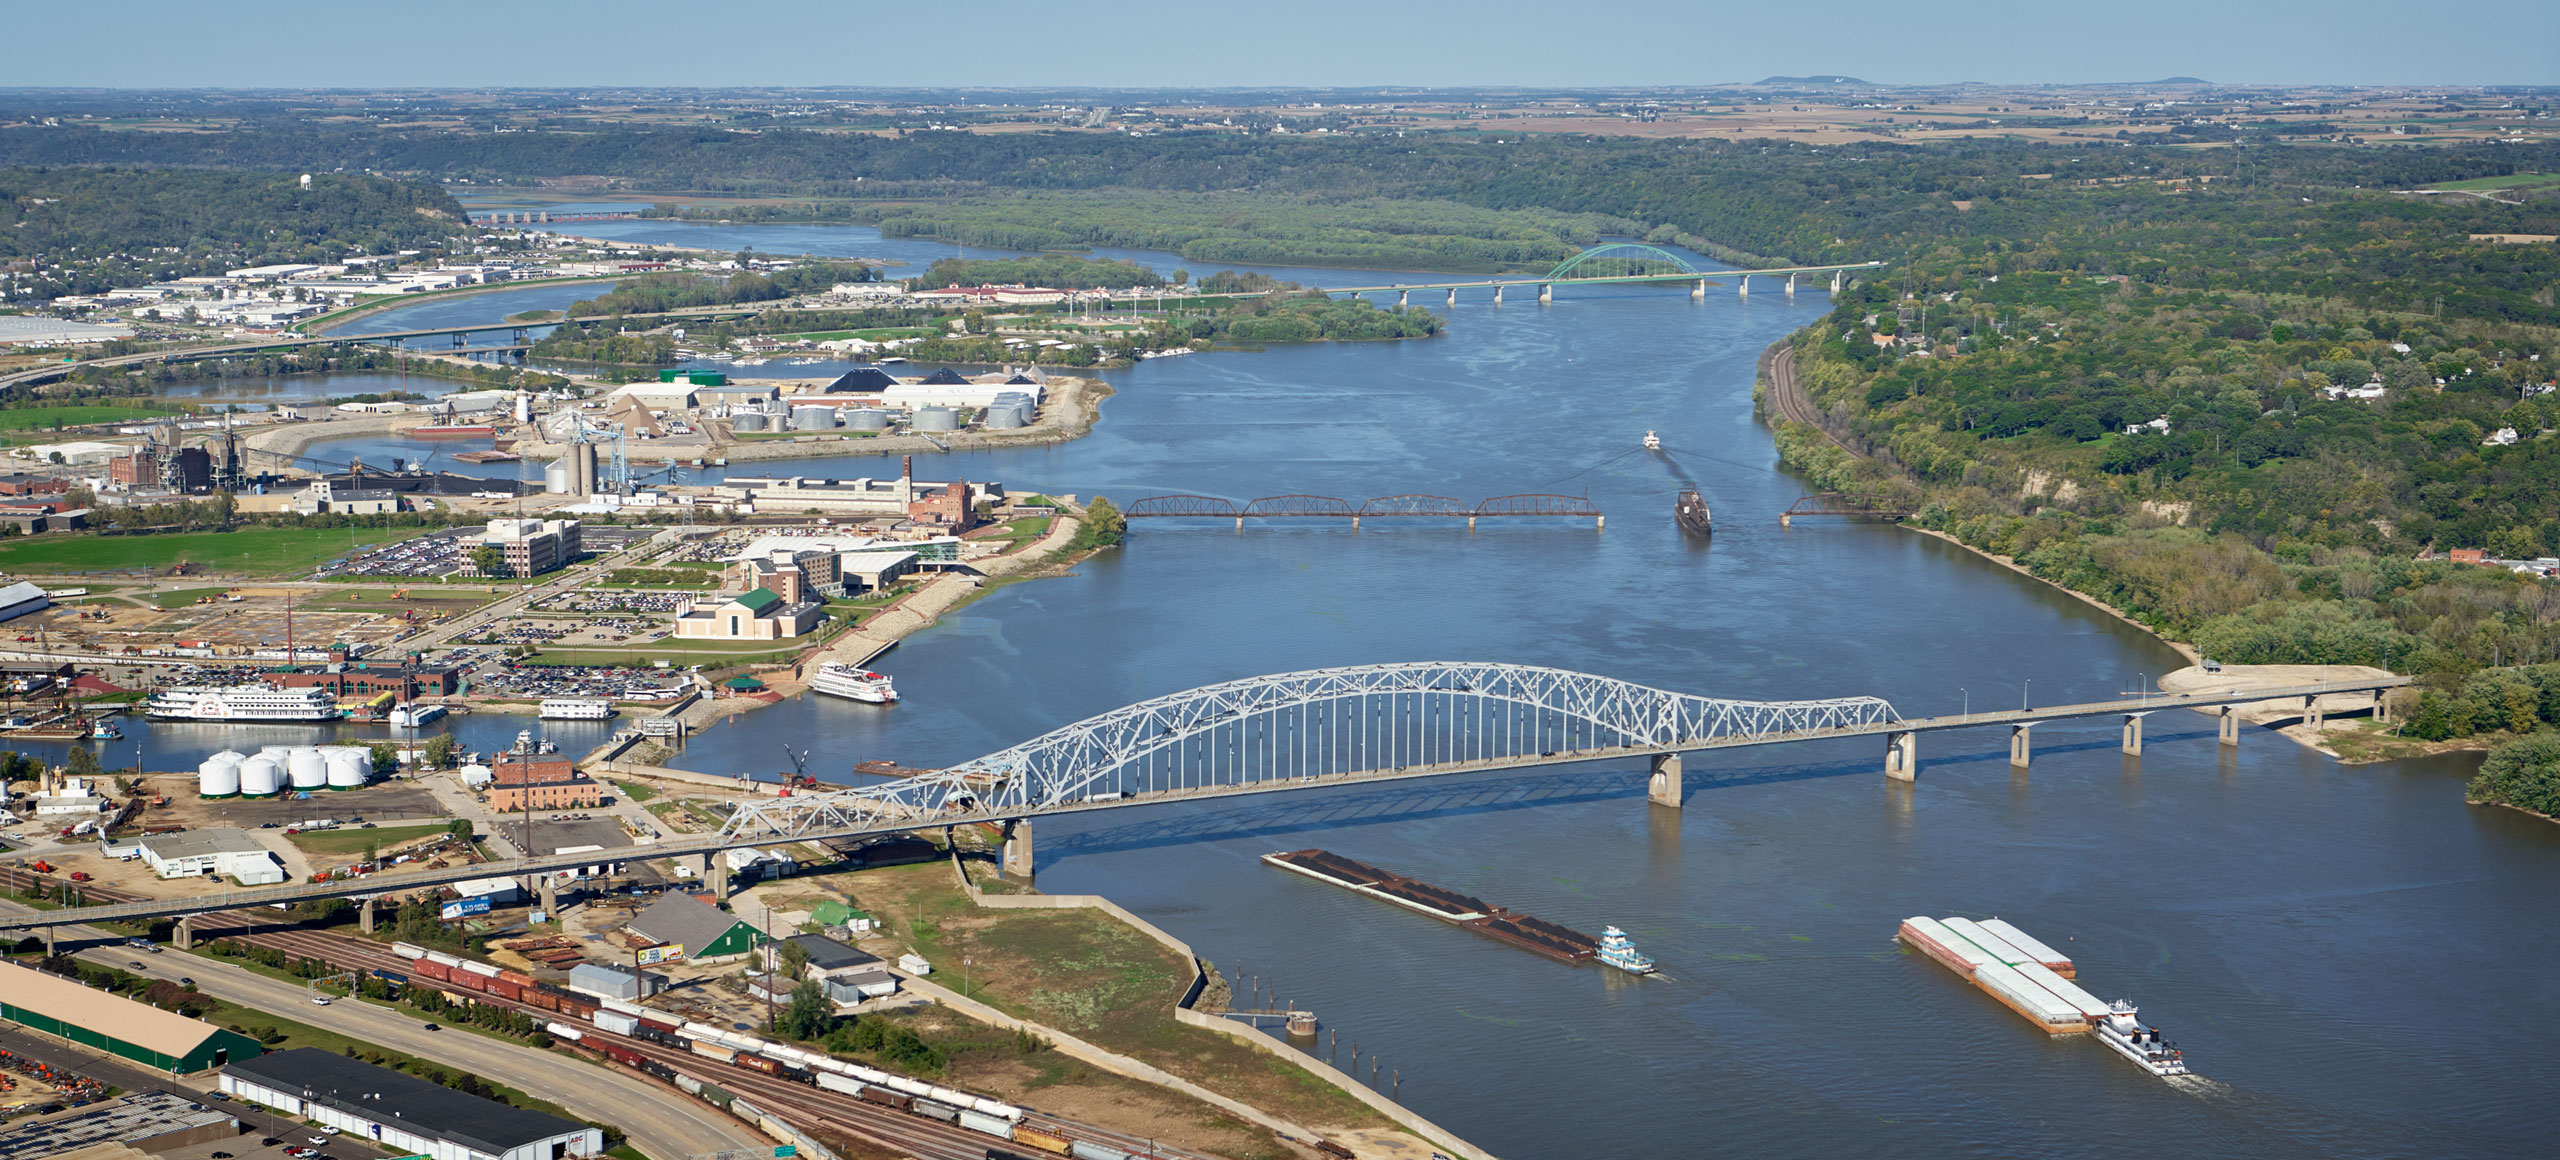 Aerial photograph of Dubuque, Iowa bridges